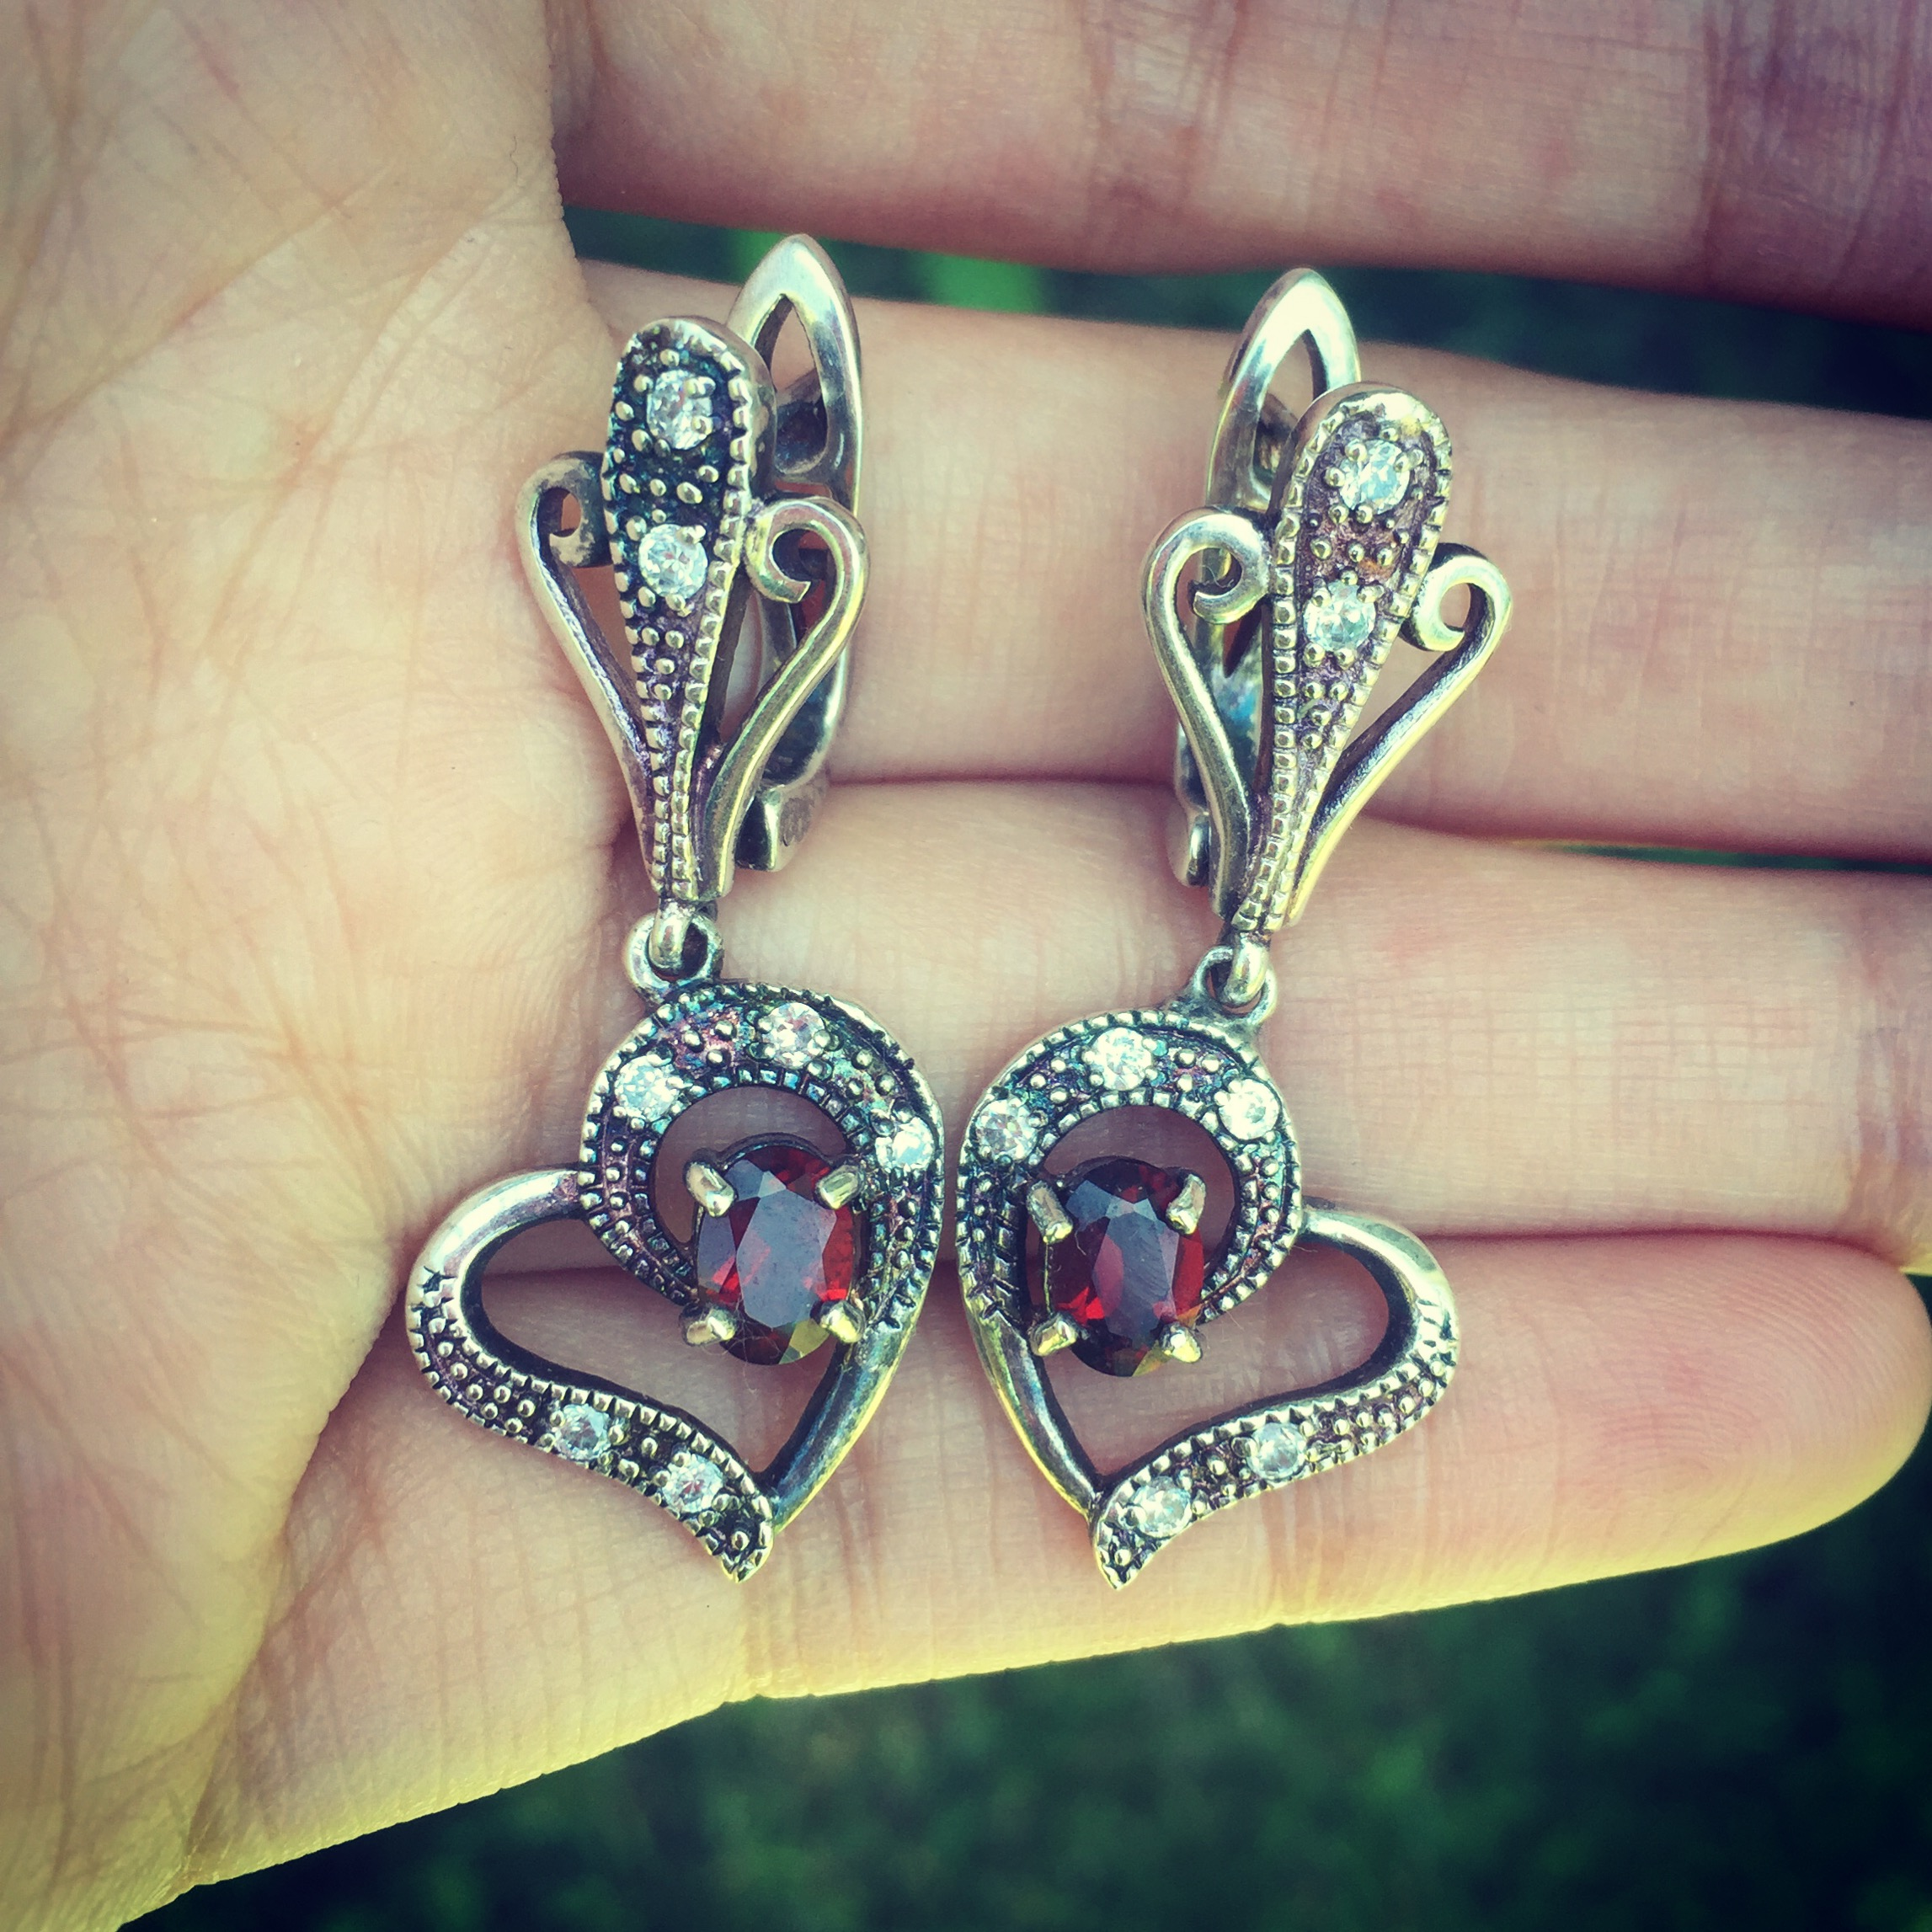 Love heart sterling silver earrings with garnet and zircon semi precious stones